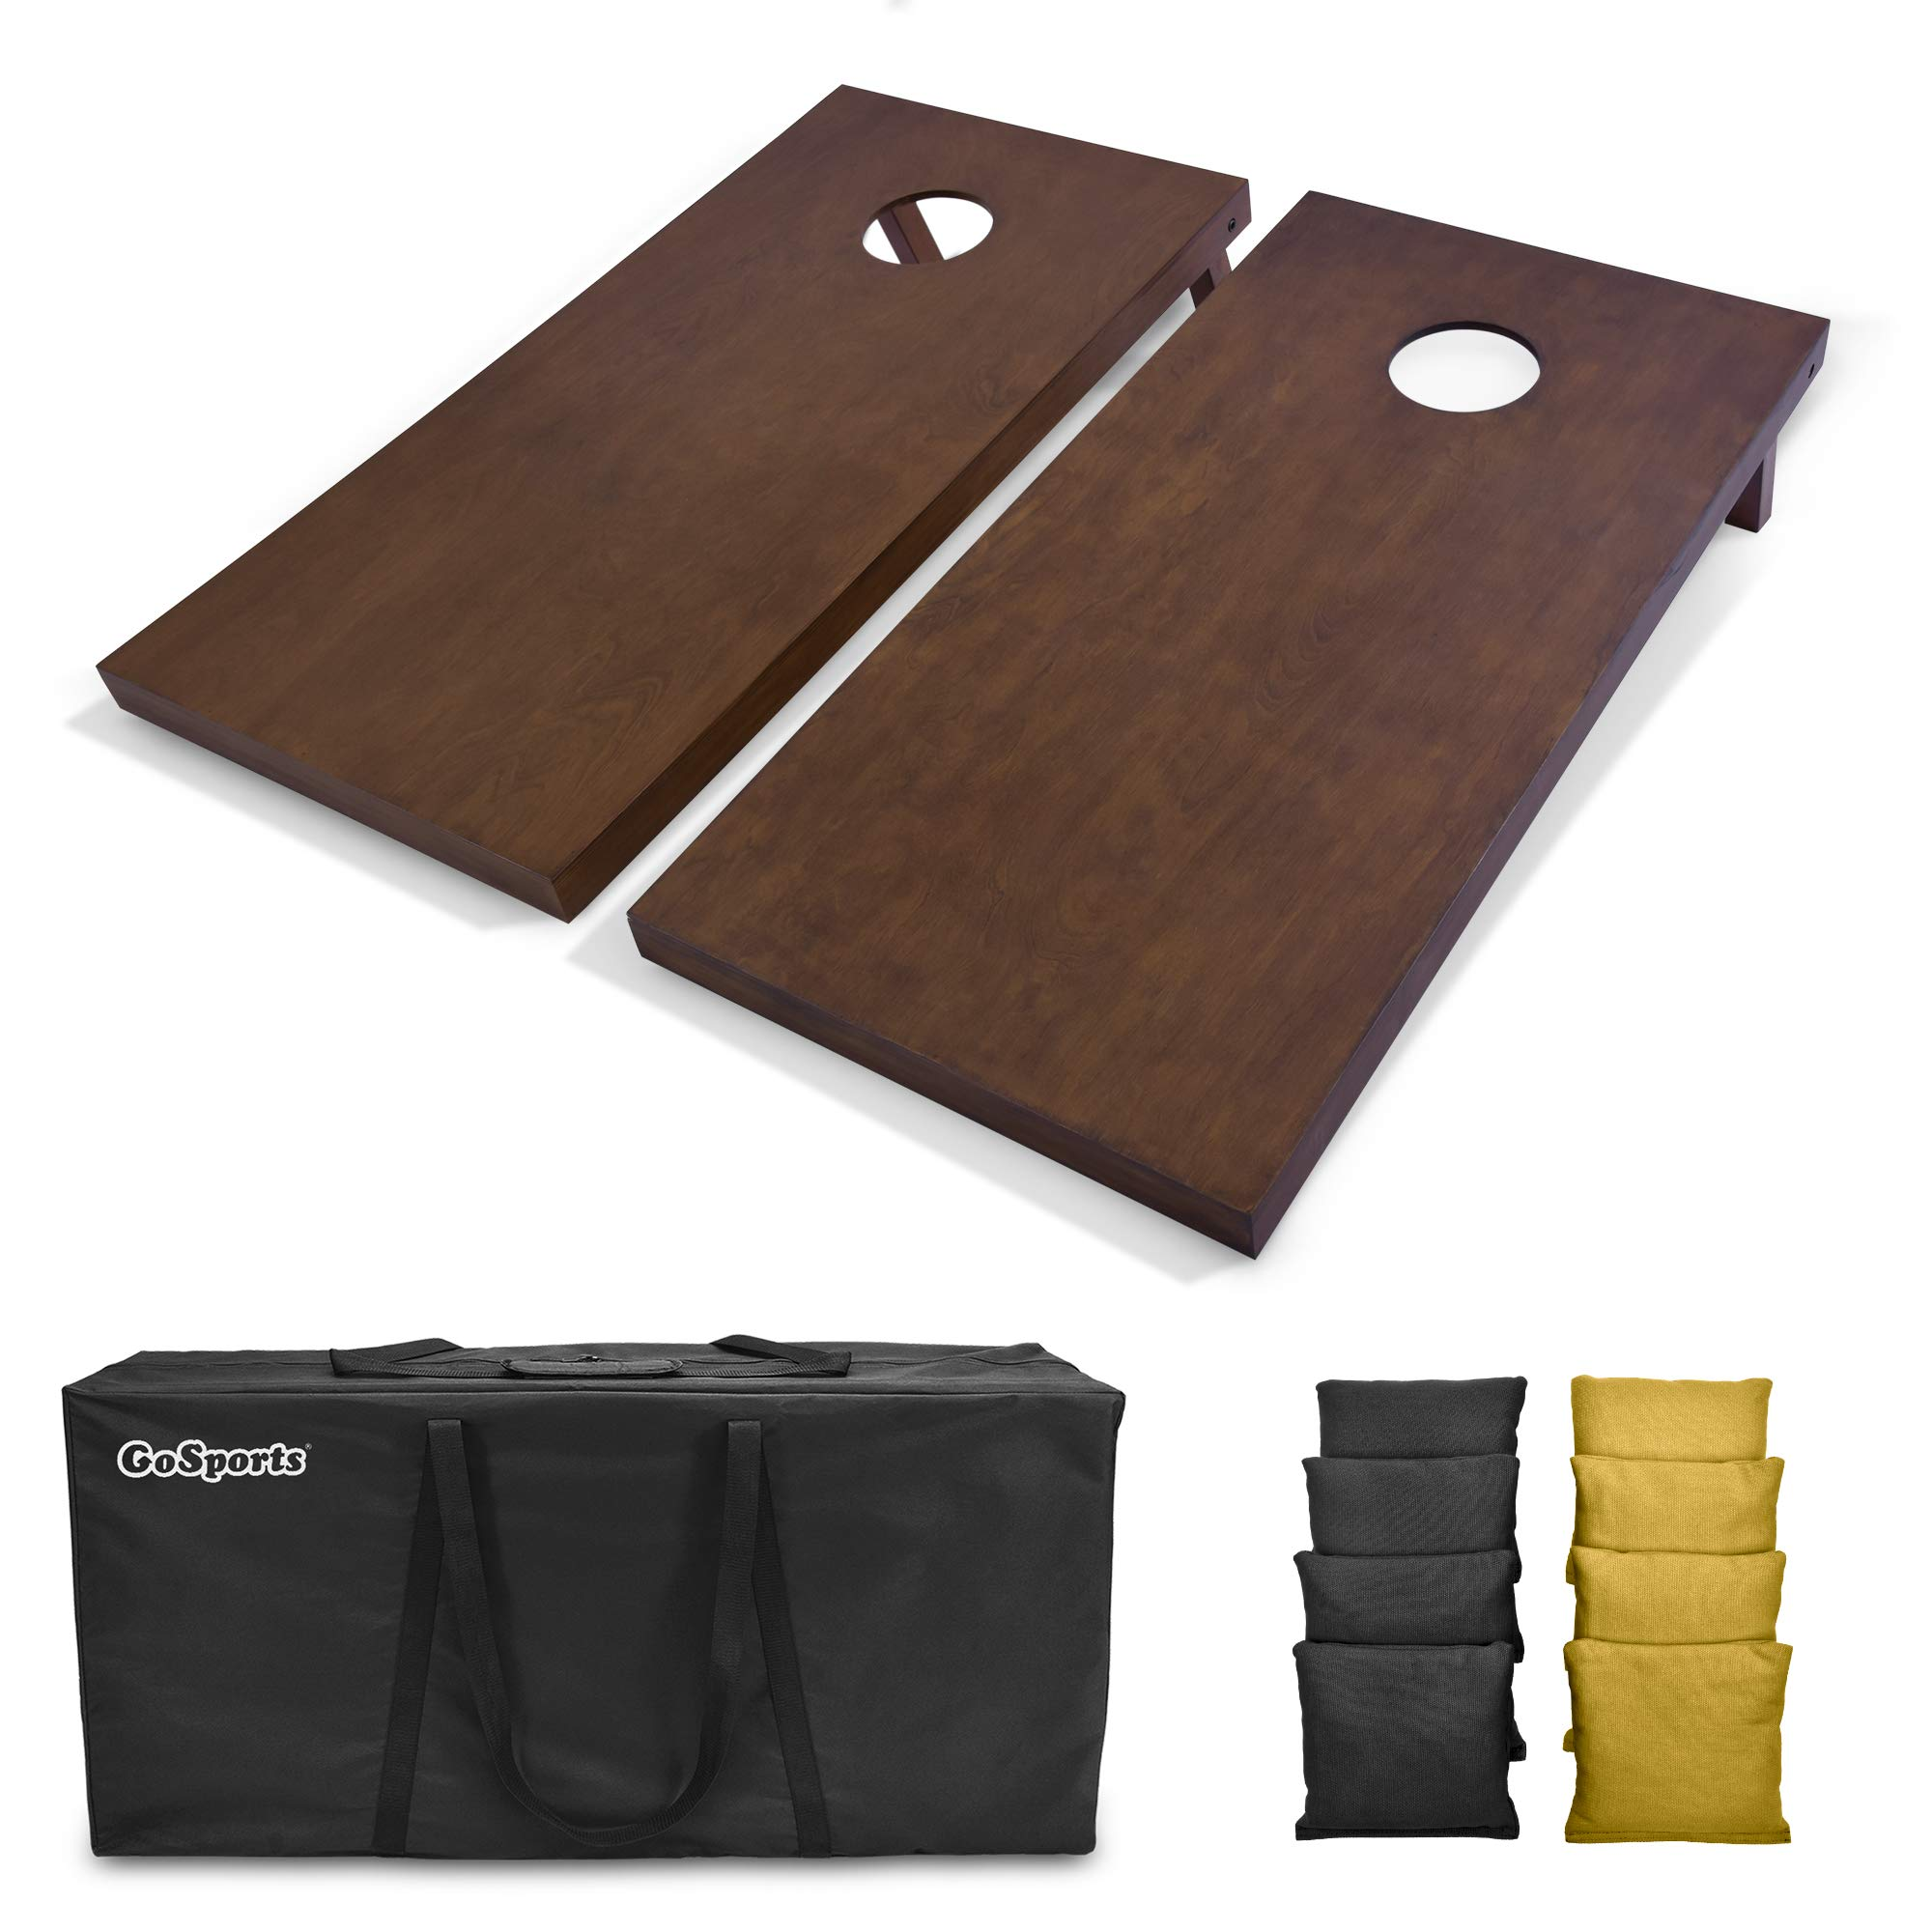 GoSports 4'x2' Regulation Size Wooden Cornhole Boards Set with Dark Brown Varnish | Includes Carrying Case and Bean Bags (Choose Your Colors) Over 100 Color Combinations